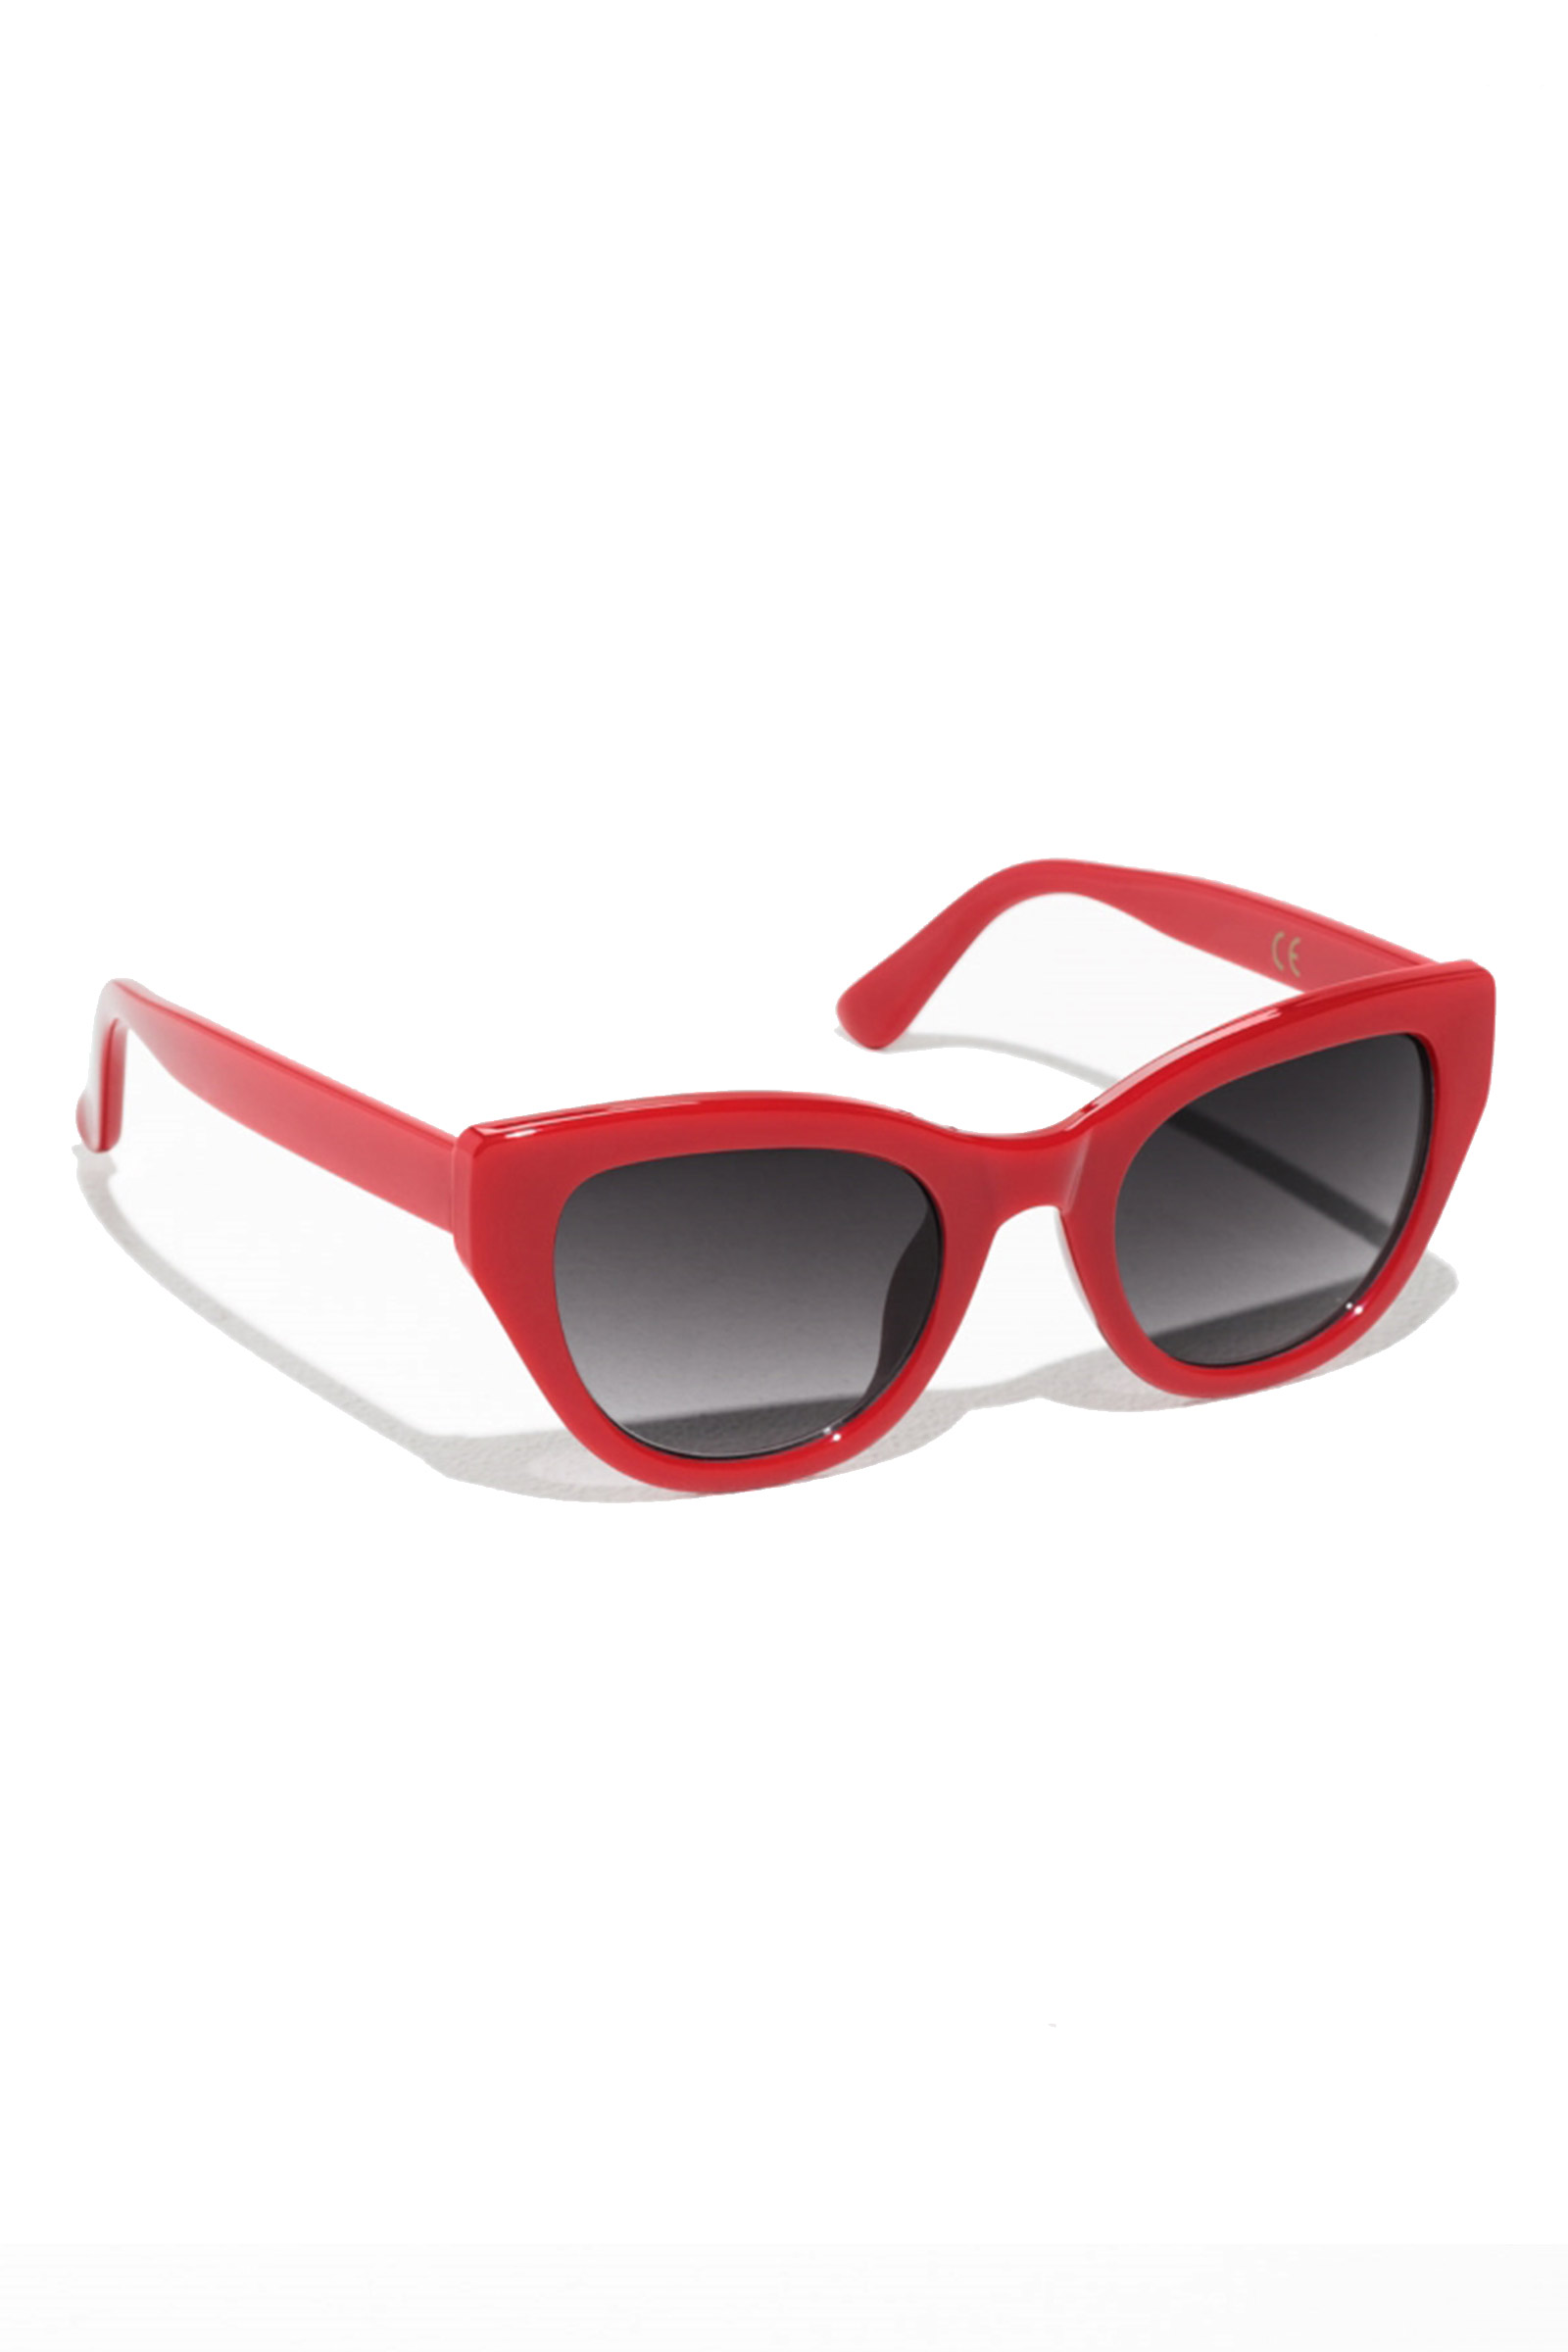 Click to Buy & Other Stories Red Cat Eye Sunglasses